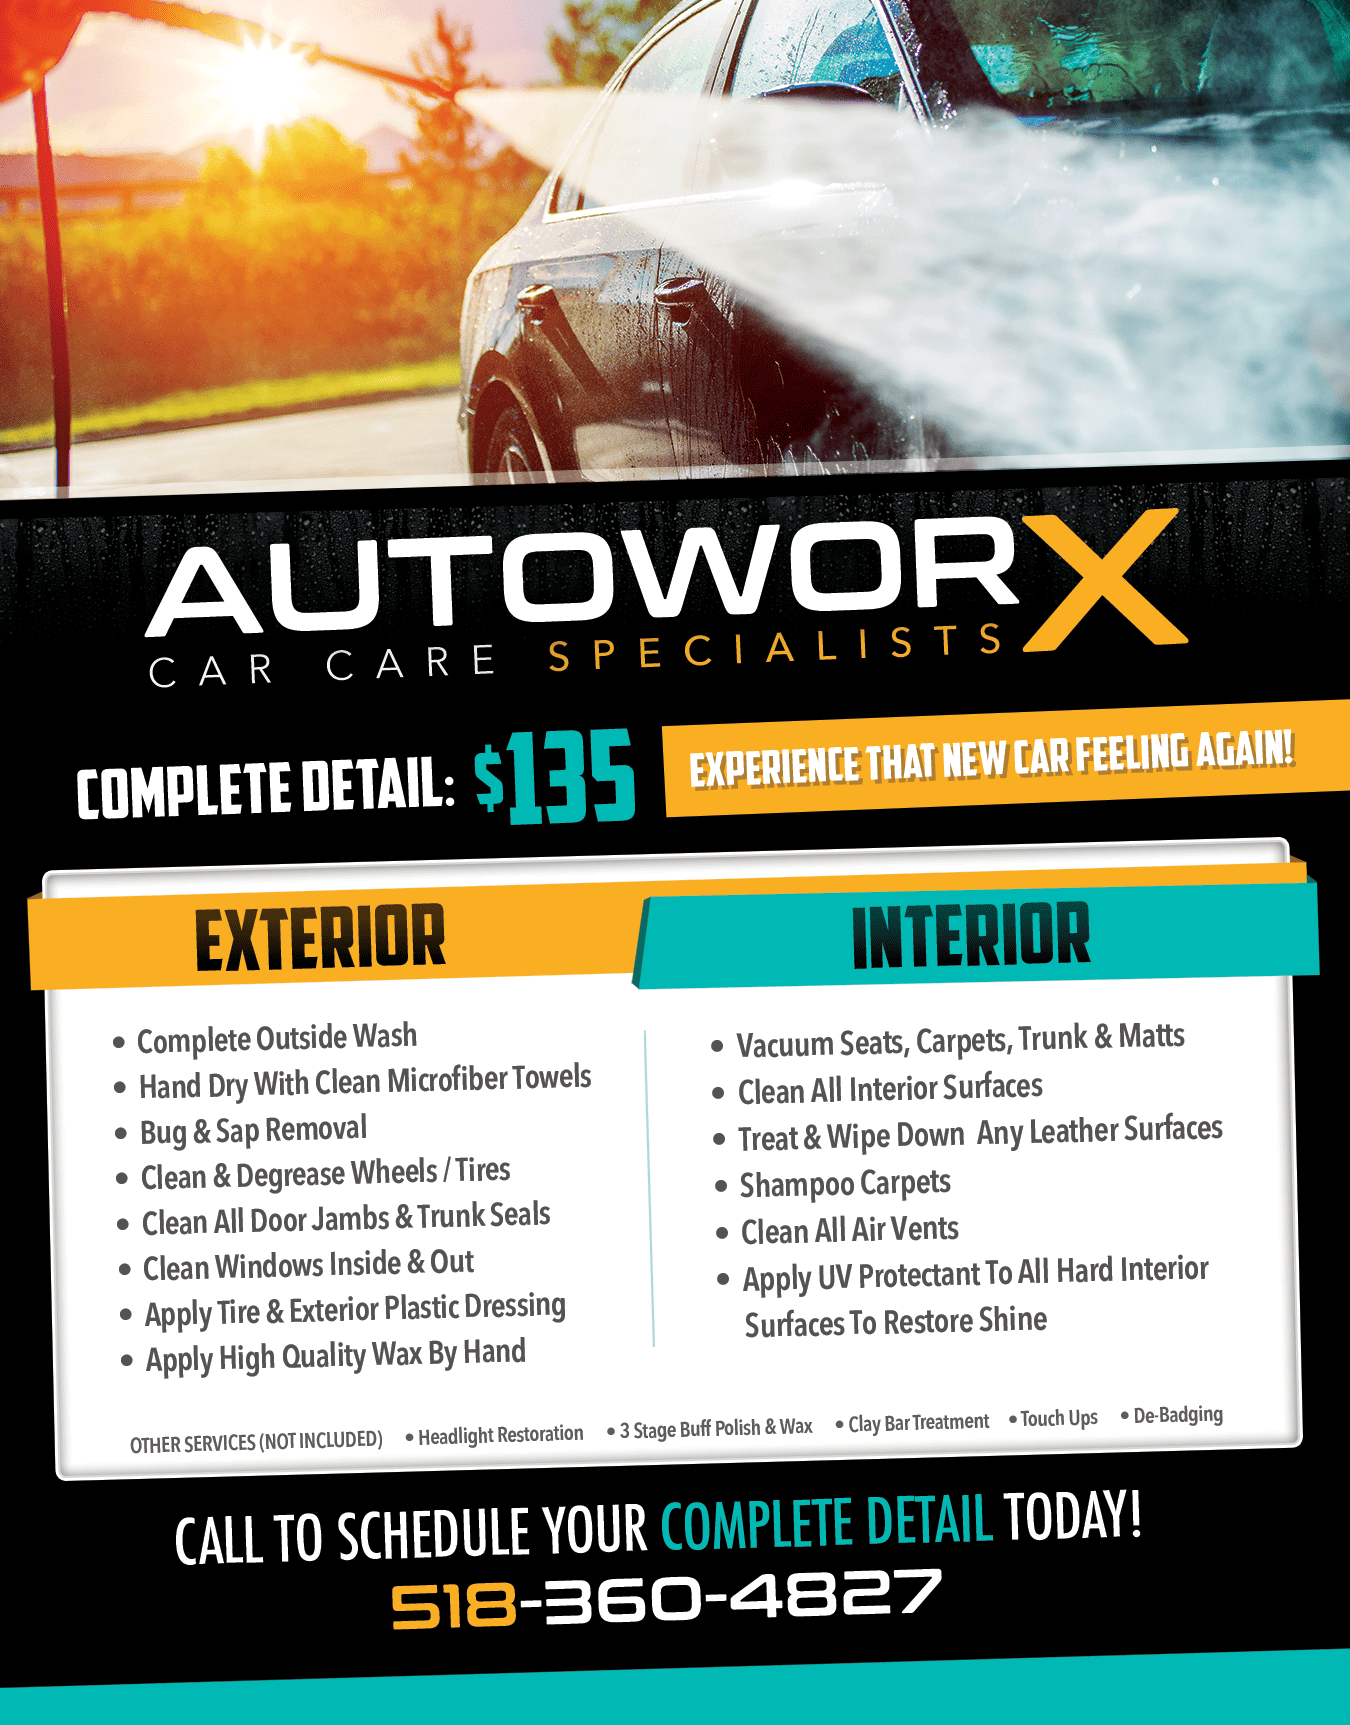 AutoworX #auto #detailing #flyer #print #advertising #car